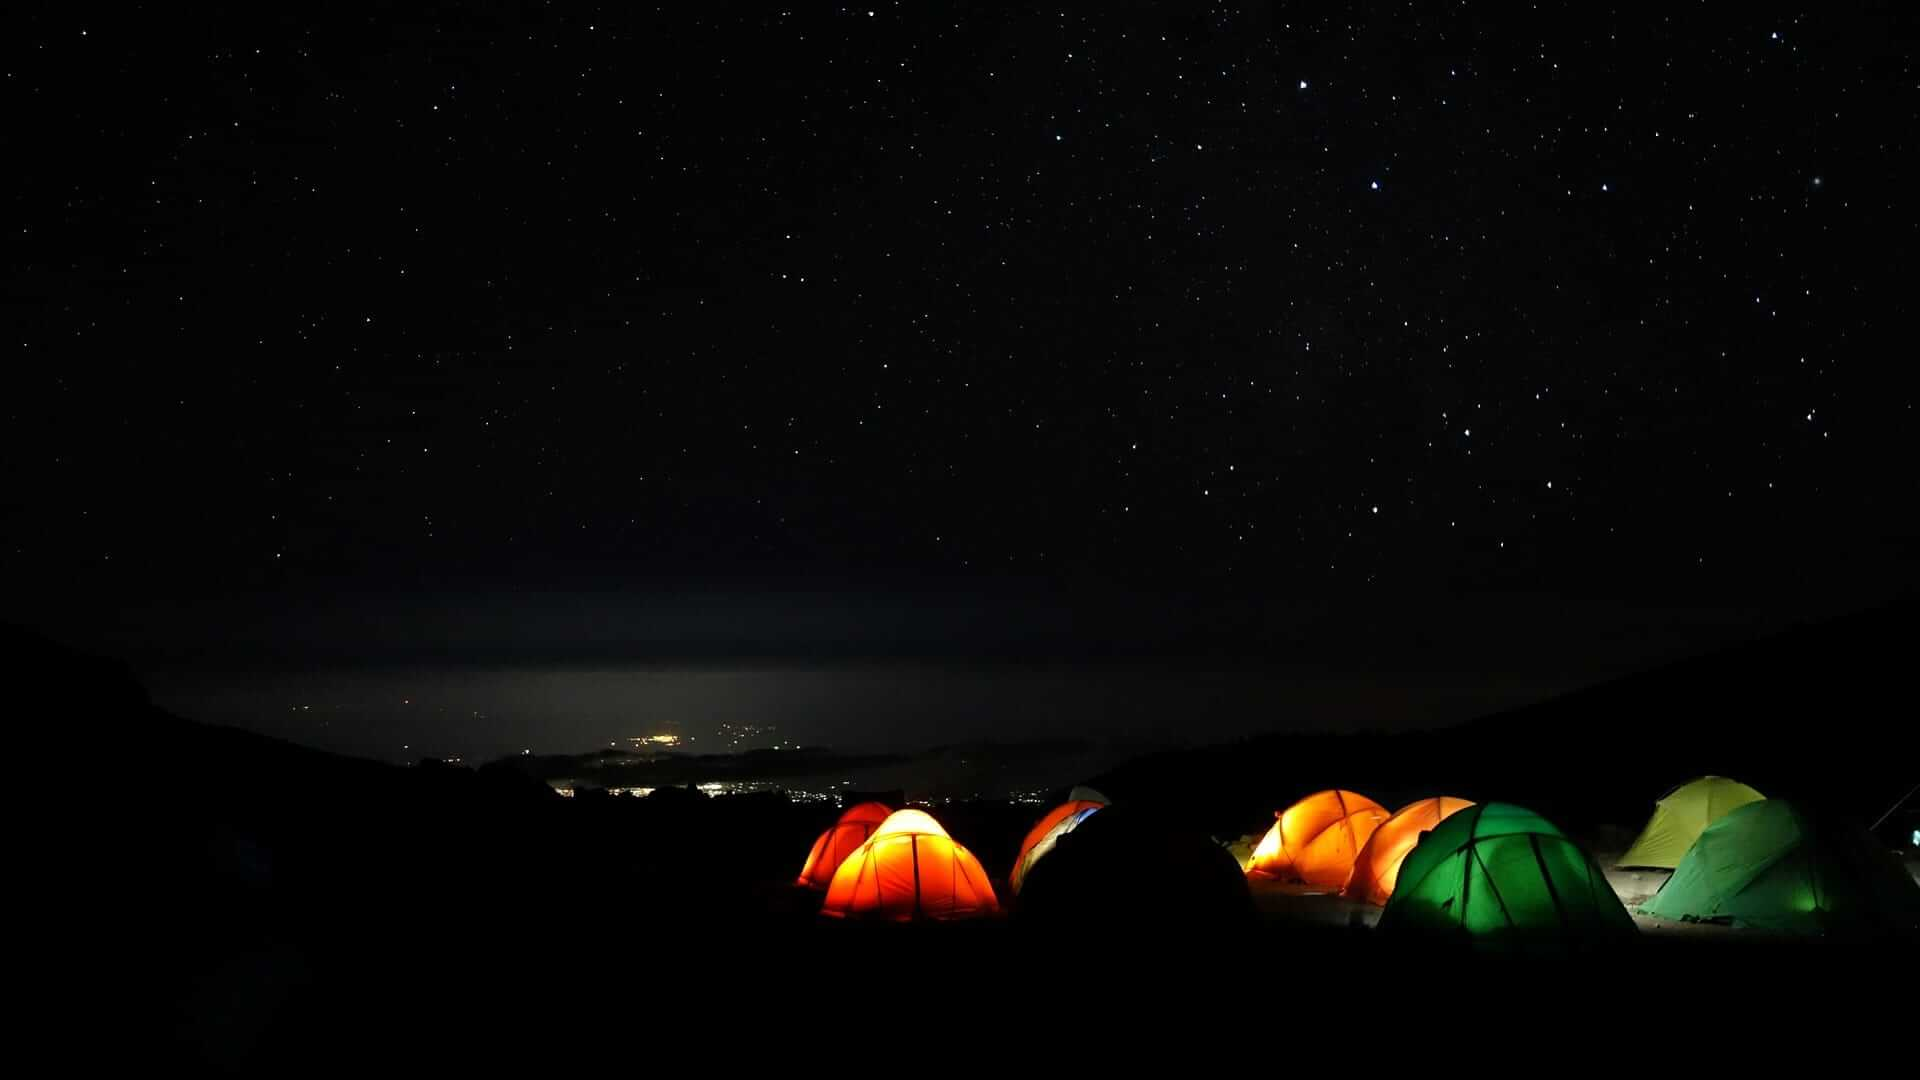 Tents in Mount Kilimanjaro - Camp Barranco